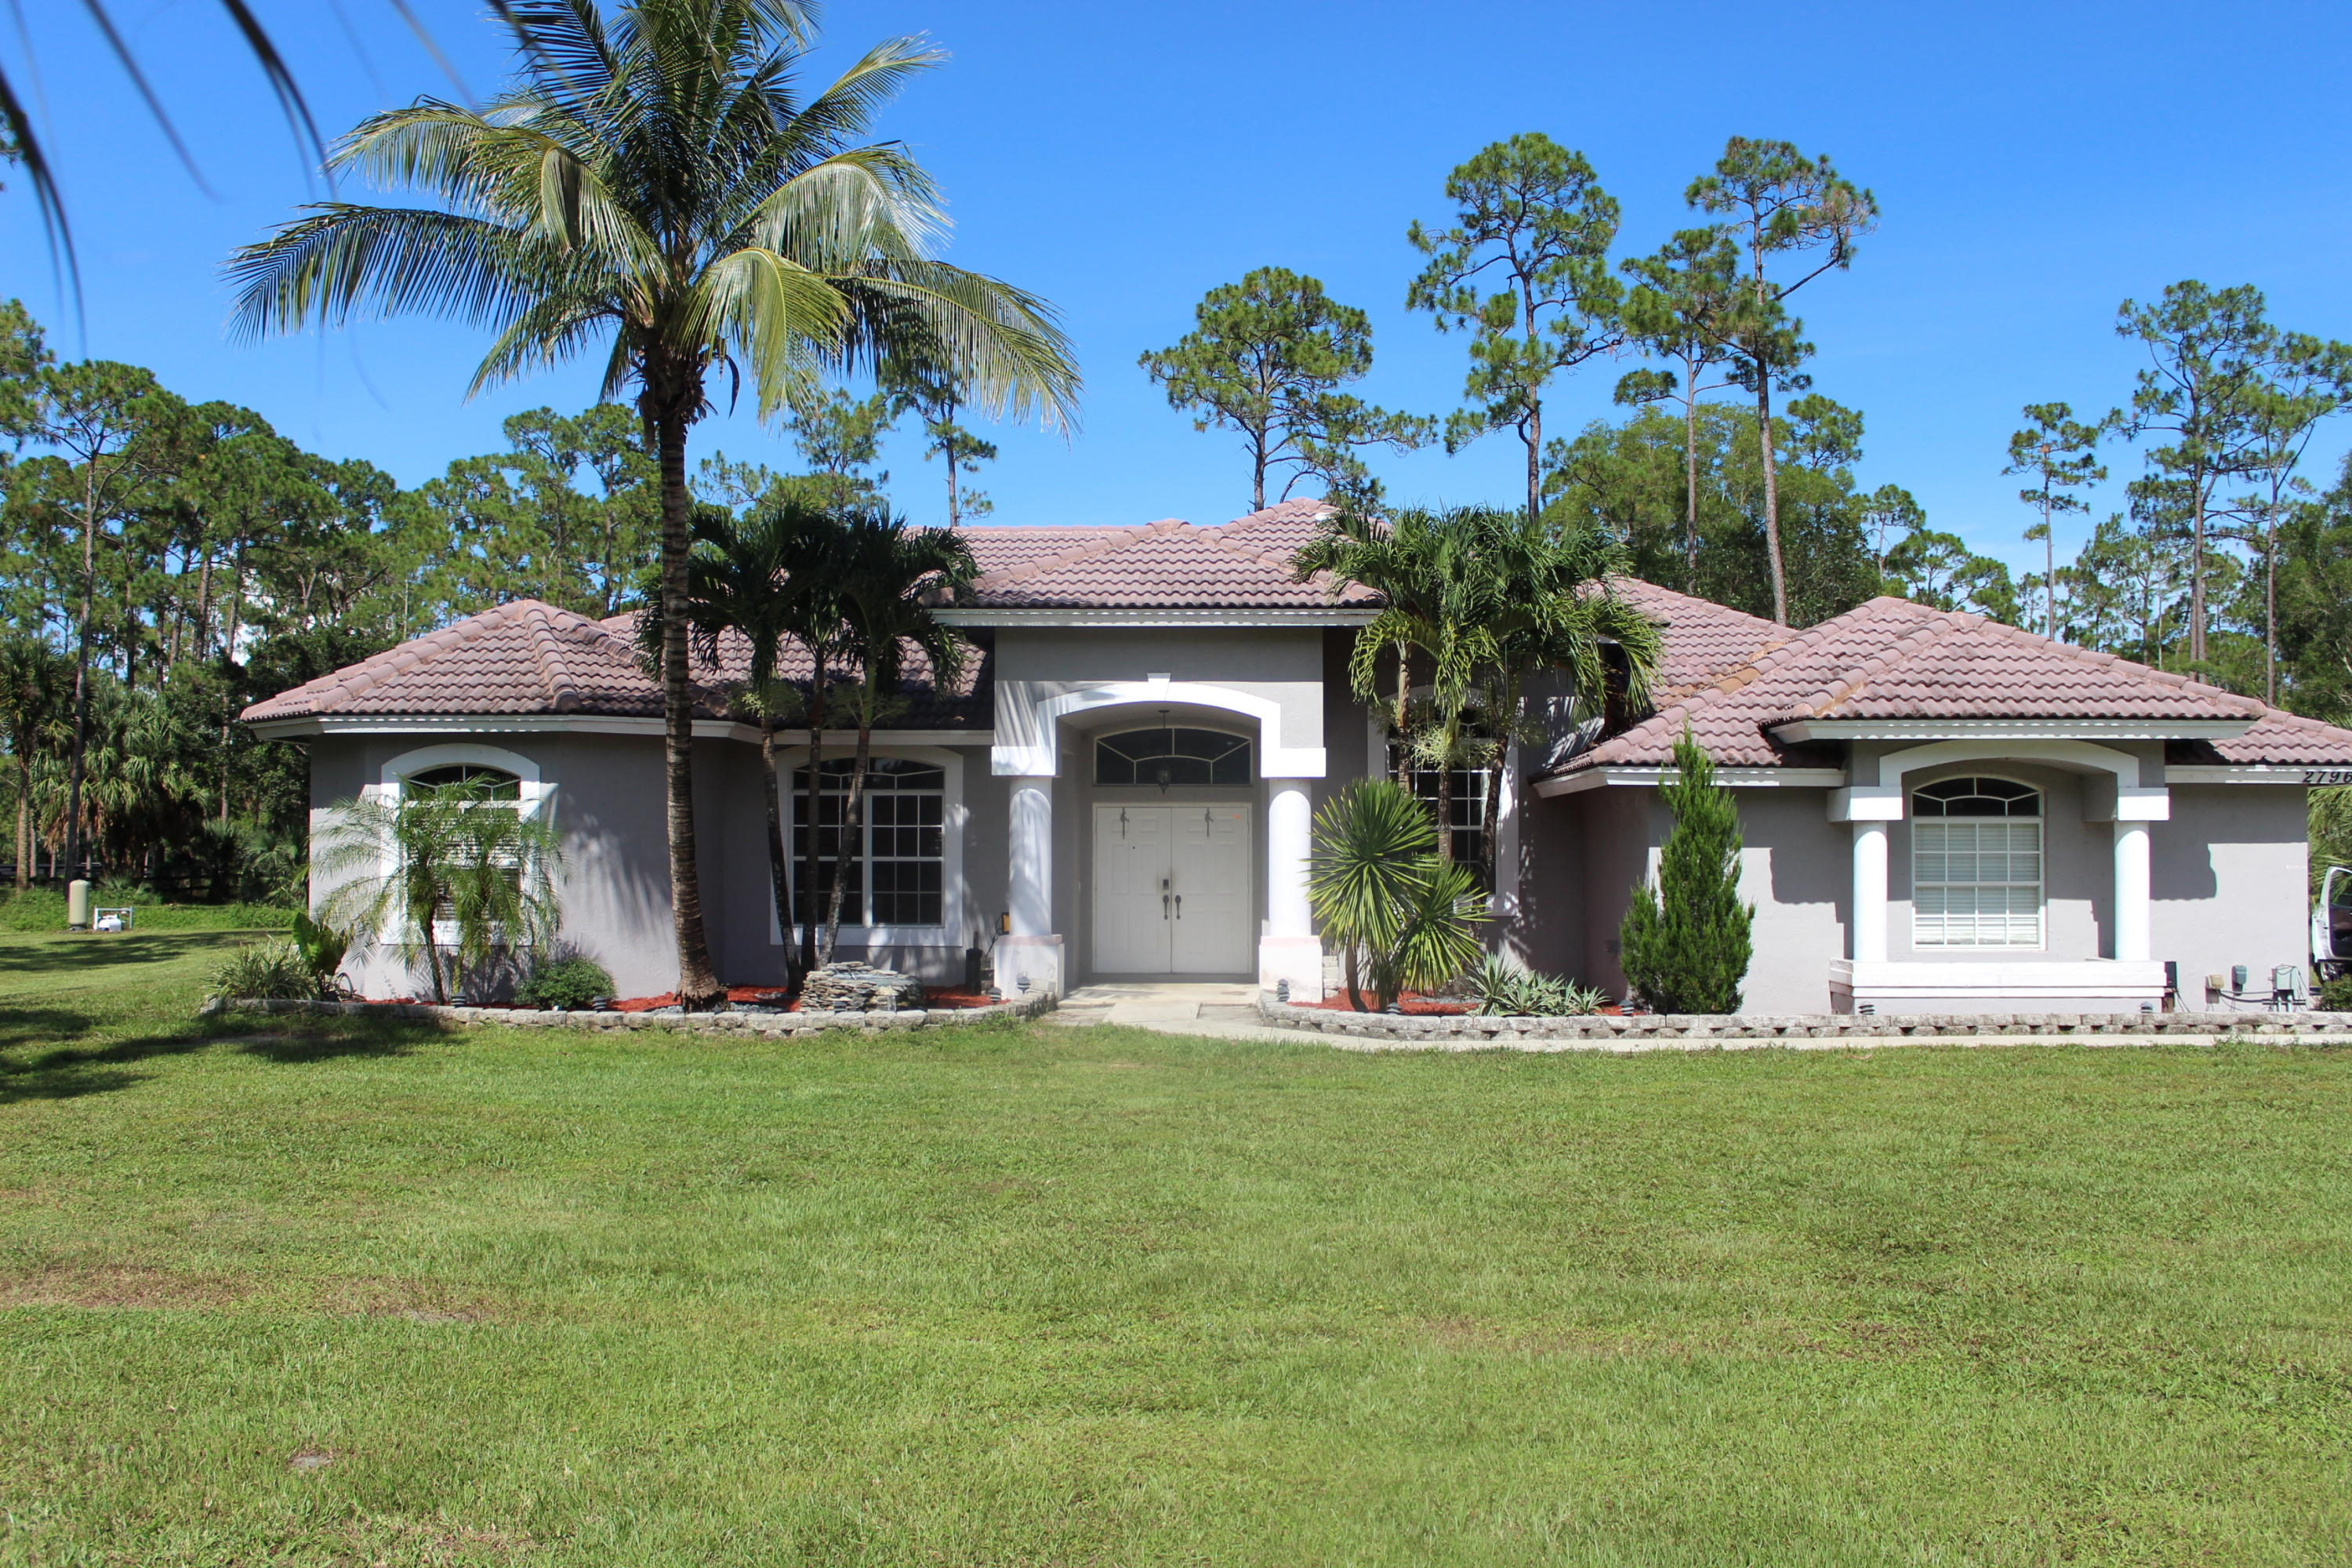 Loxahatchee- Florida 33470, 4 Bedrooms Bedrooms, ,3 BathroomsBathrooms,Residential,For Sale,Fawn,RX-10443355